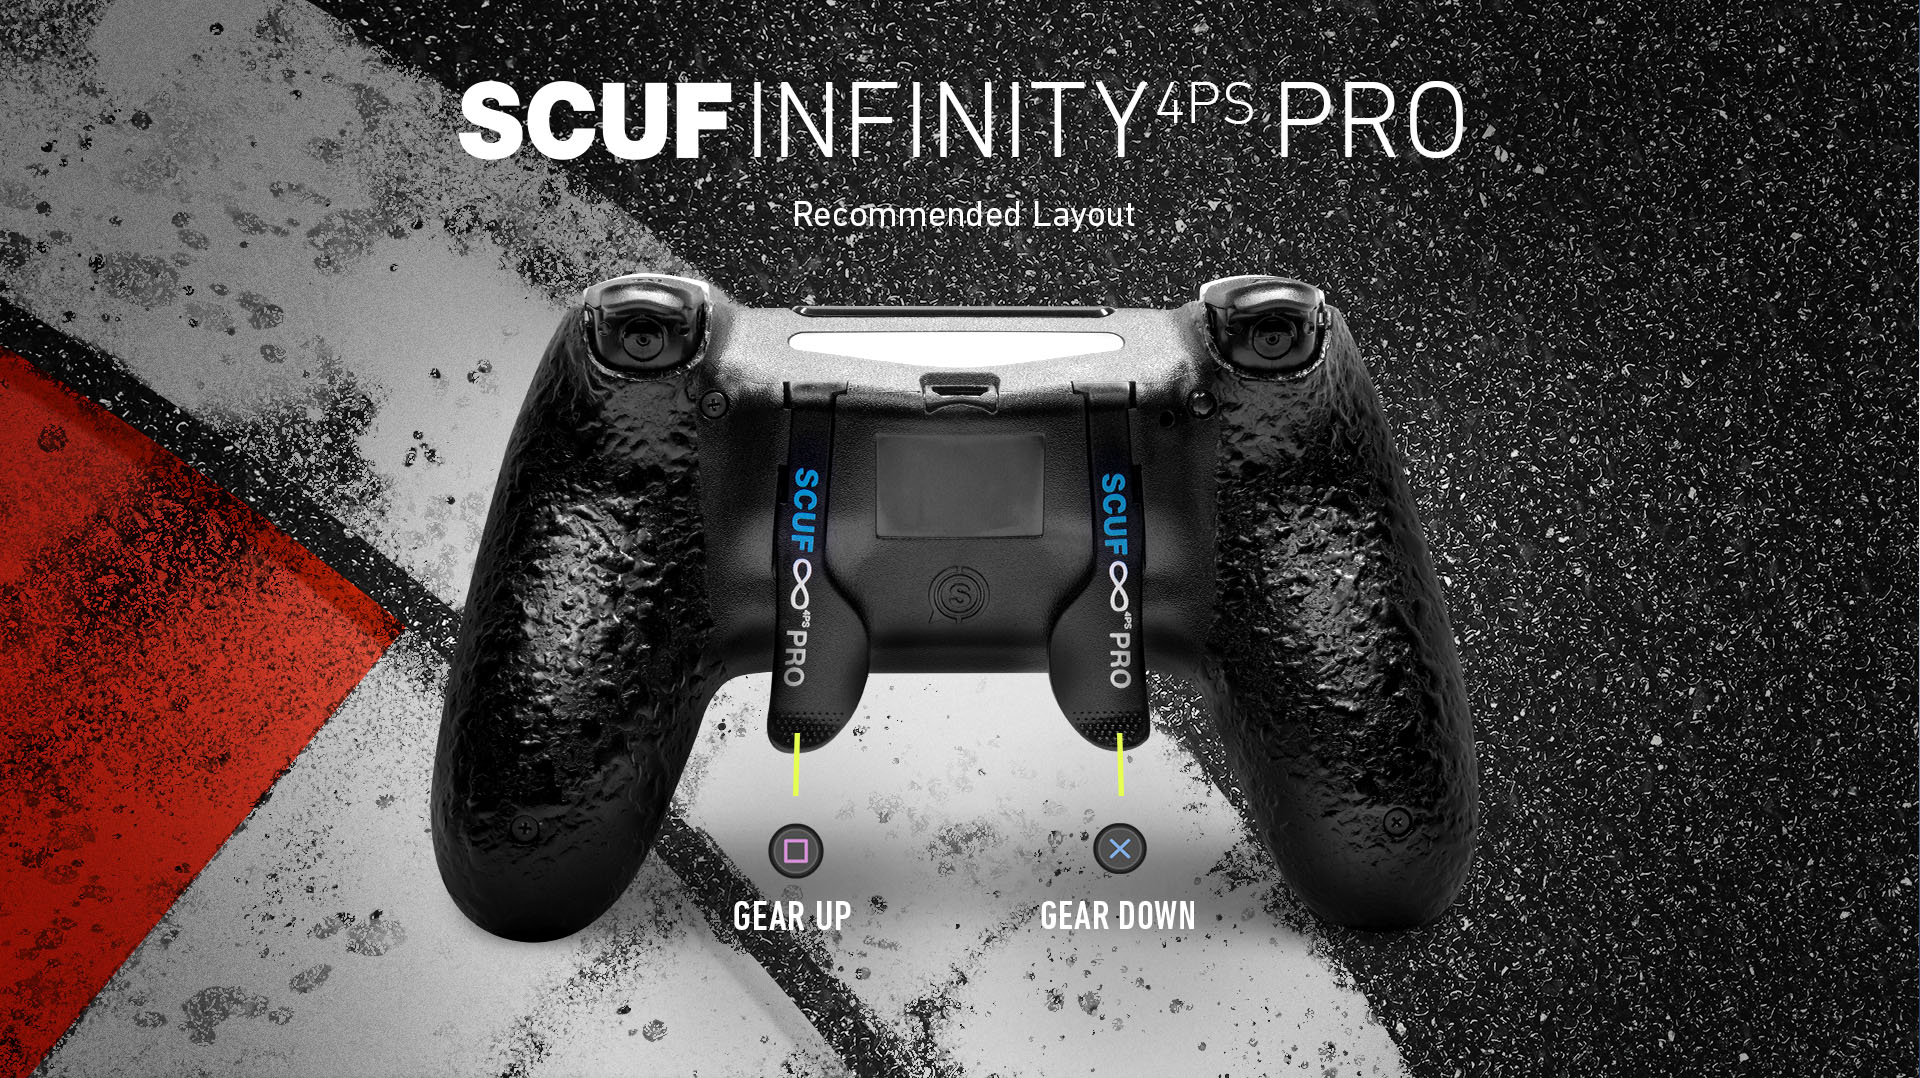 SCUF Infinity 4ps PRO F1 2019 PS4 Controller Set Up